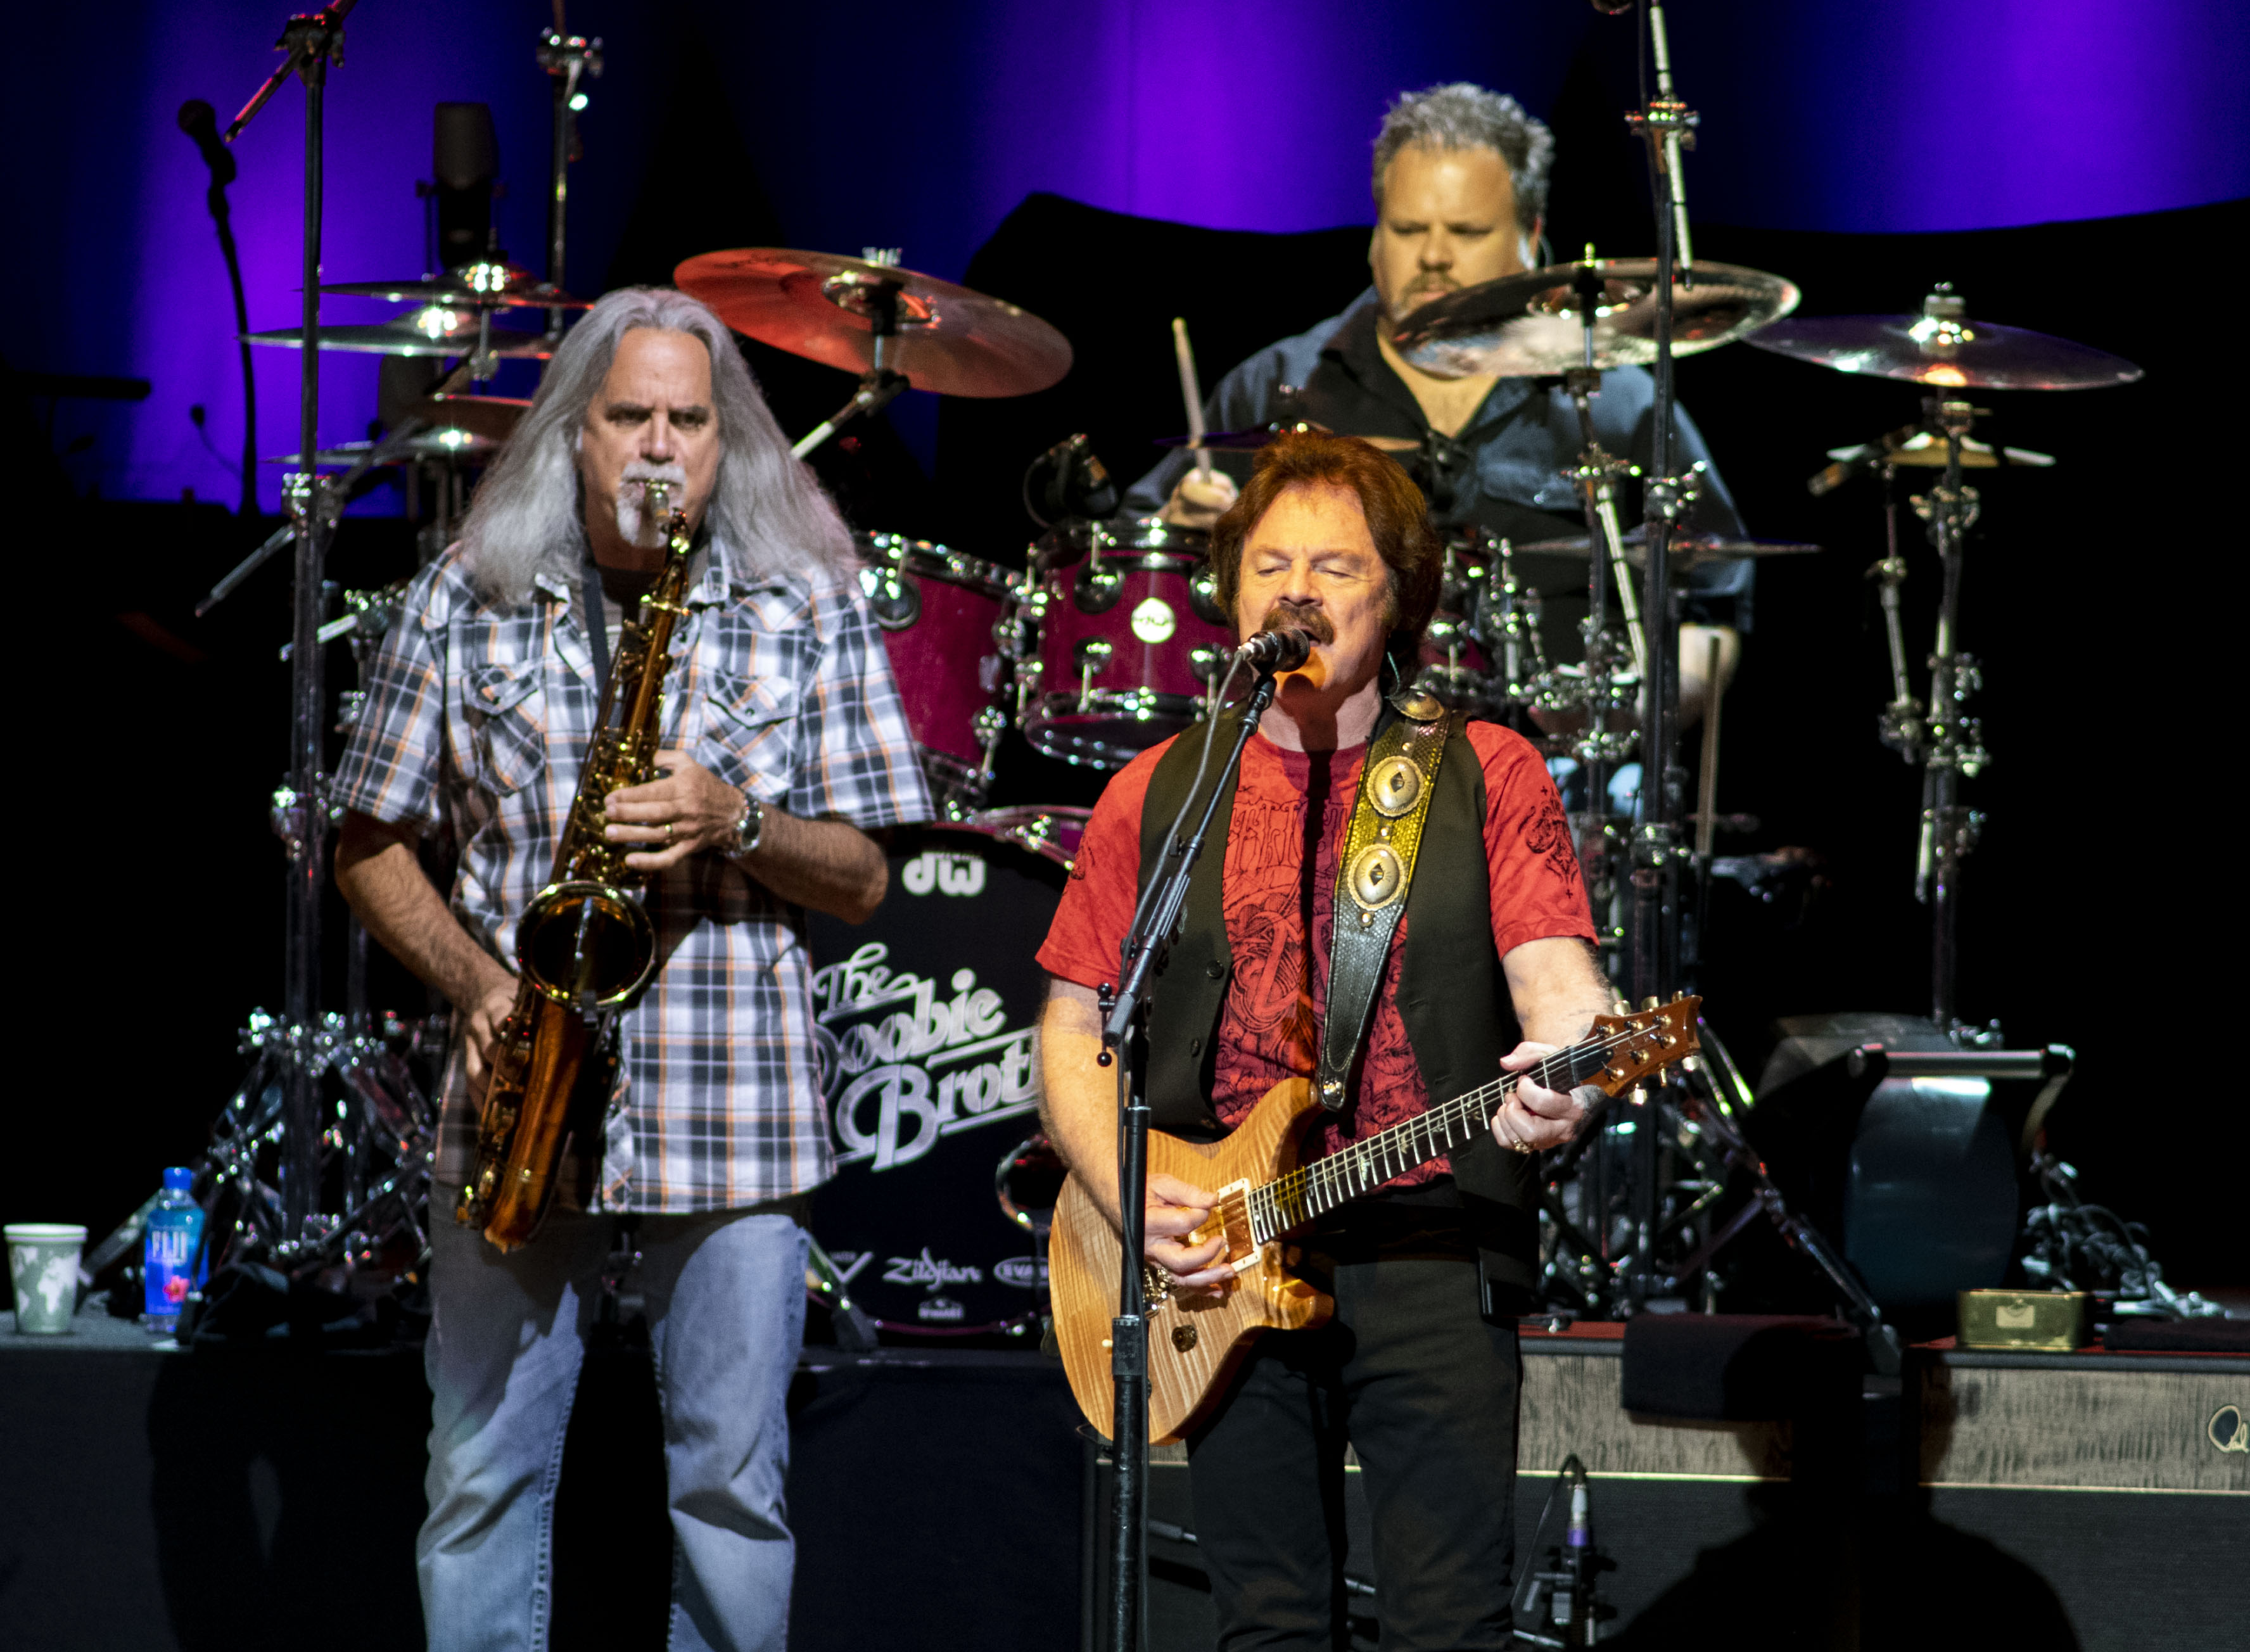 Marc Russo and Tom Johnston